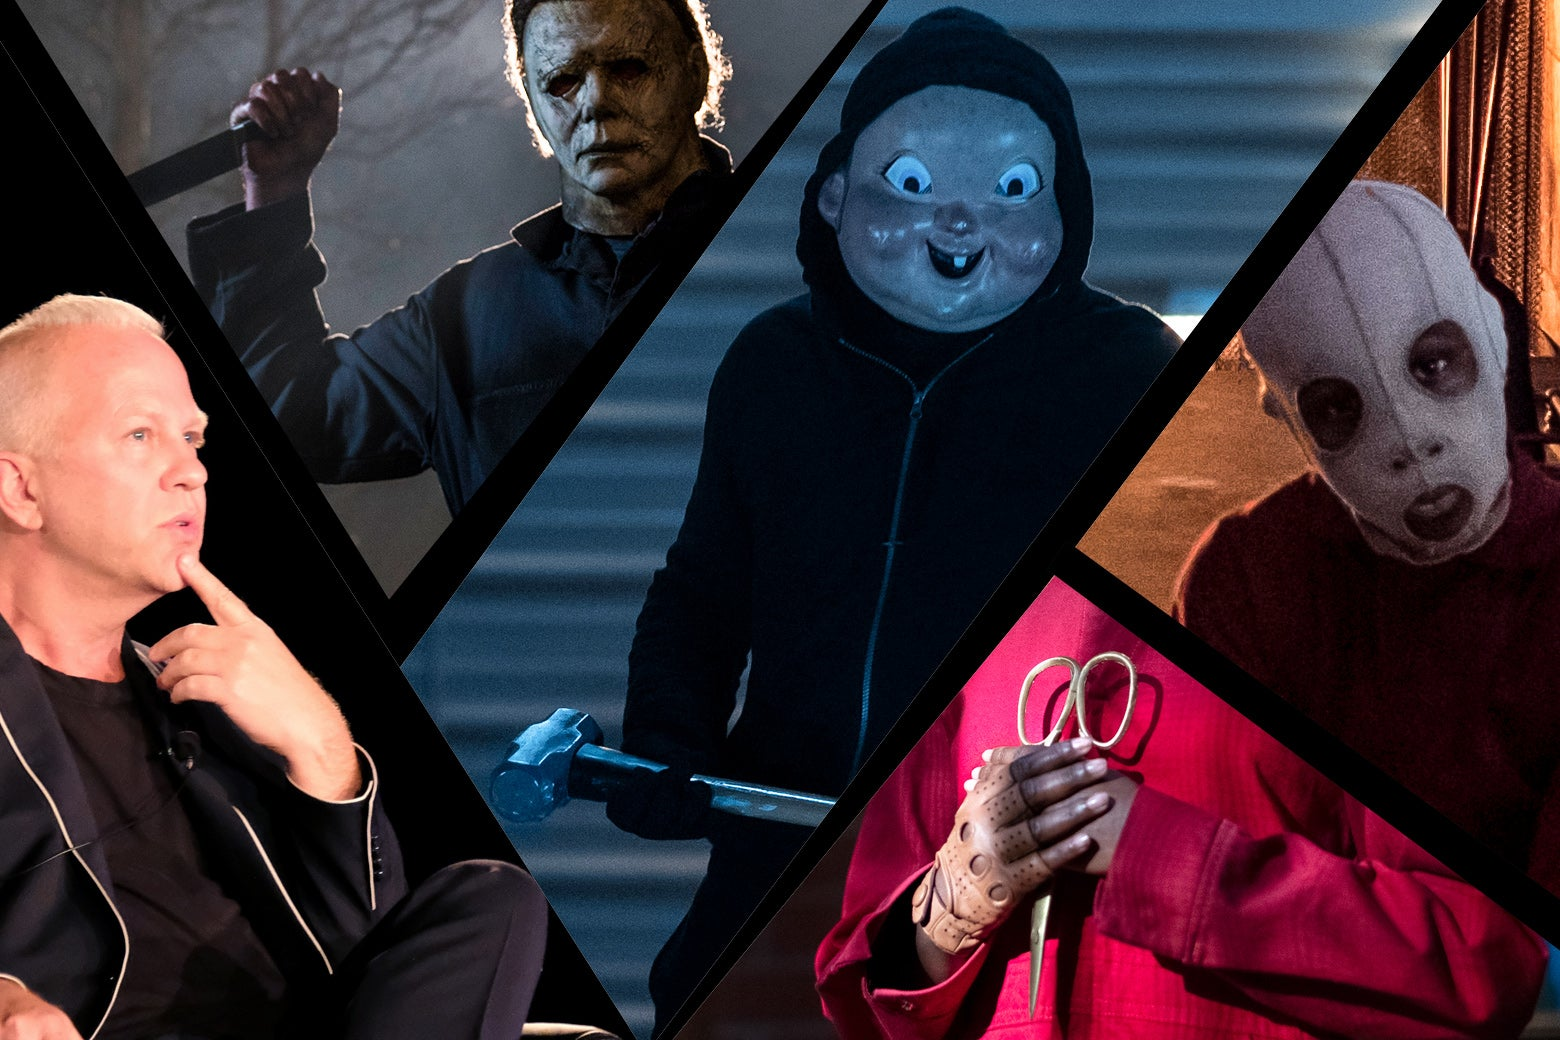 Photo illustration of Ryan Murphy, Michael Myers, the antagonist from Happy Death Day, and images from Us.